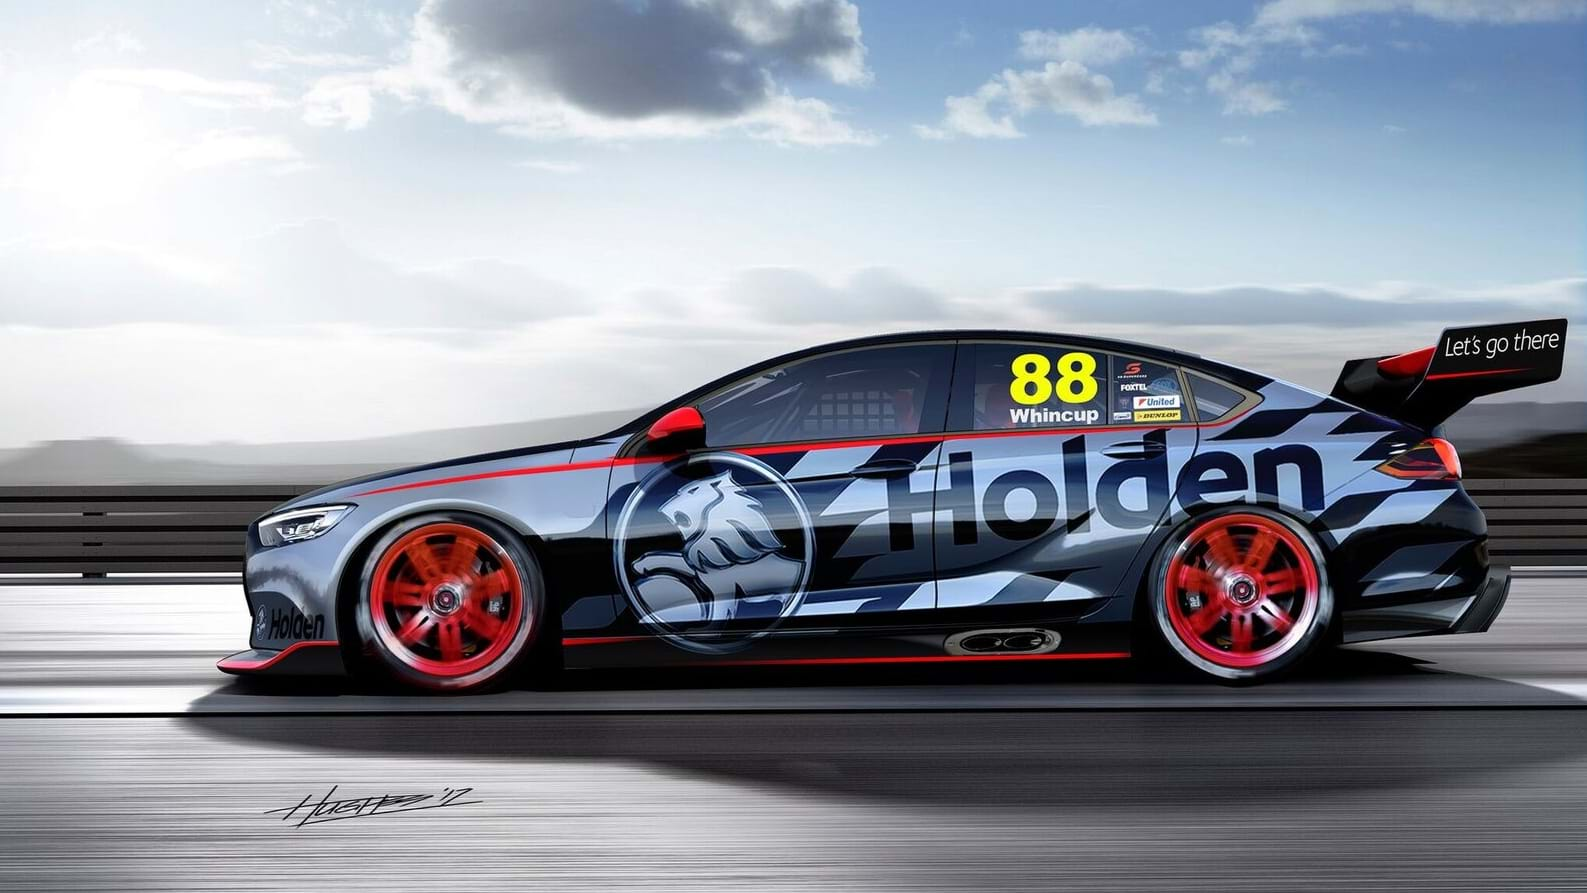 Holden's New V8 Supercar Looks Exactly Like a Buick Regal